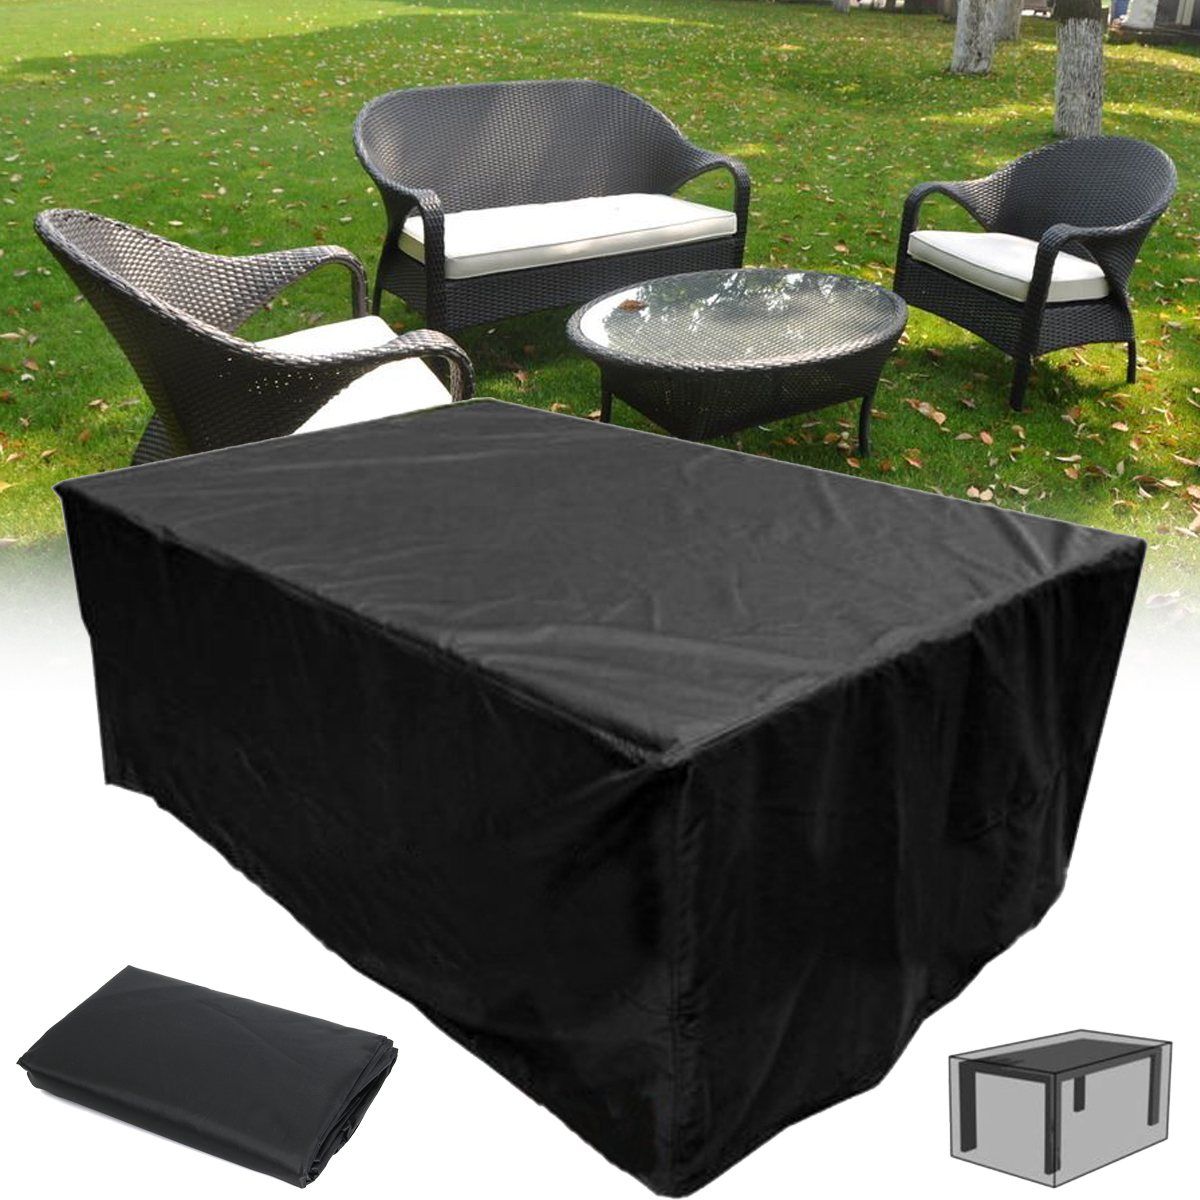 New Polyester Outdoor Furniture Covers Shelter 11*11*11cm Garden Patio  Rain Sun Protection Cover Canopy Dustproof Table Cloth